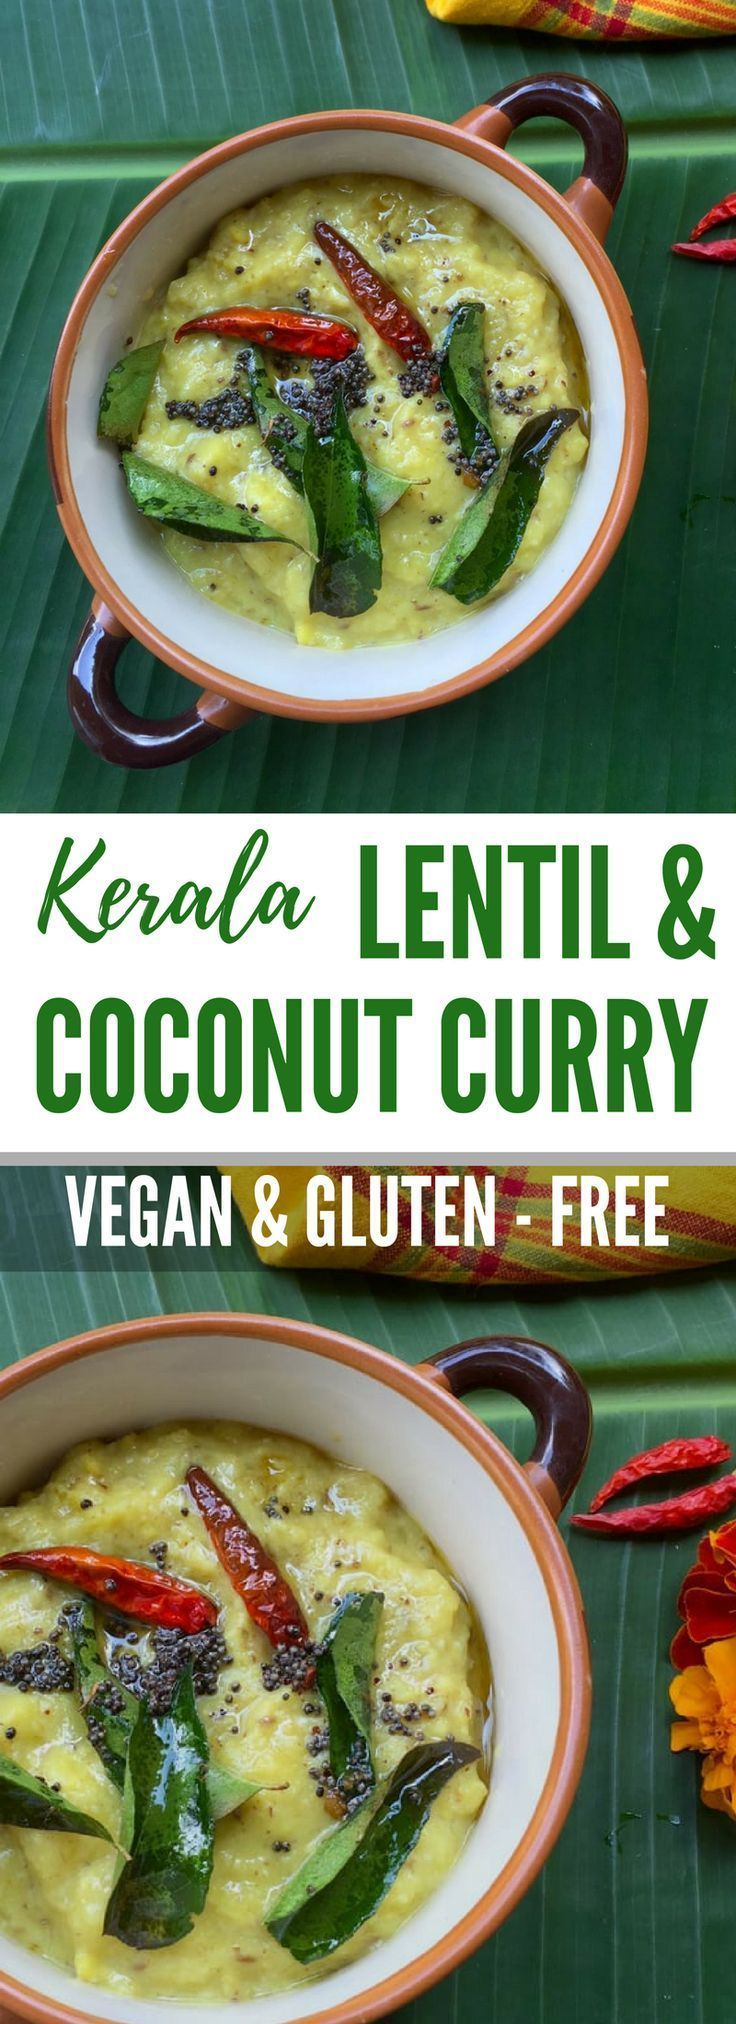 Recipe for Kerala Lentil & Coconut Curry | Yellow moong dal with coconut | Onam Parippu recipe - A simple and delicious recipe as part of the traditional onam feast | Vegan and Gluten-free